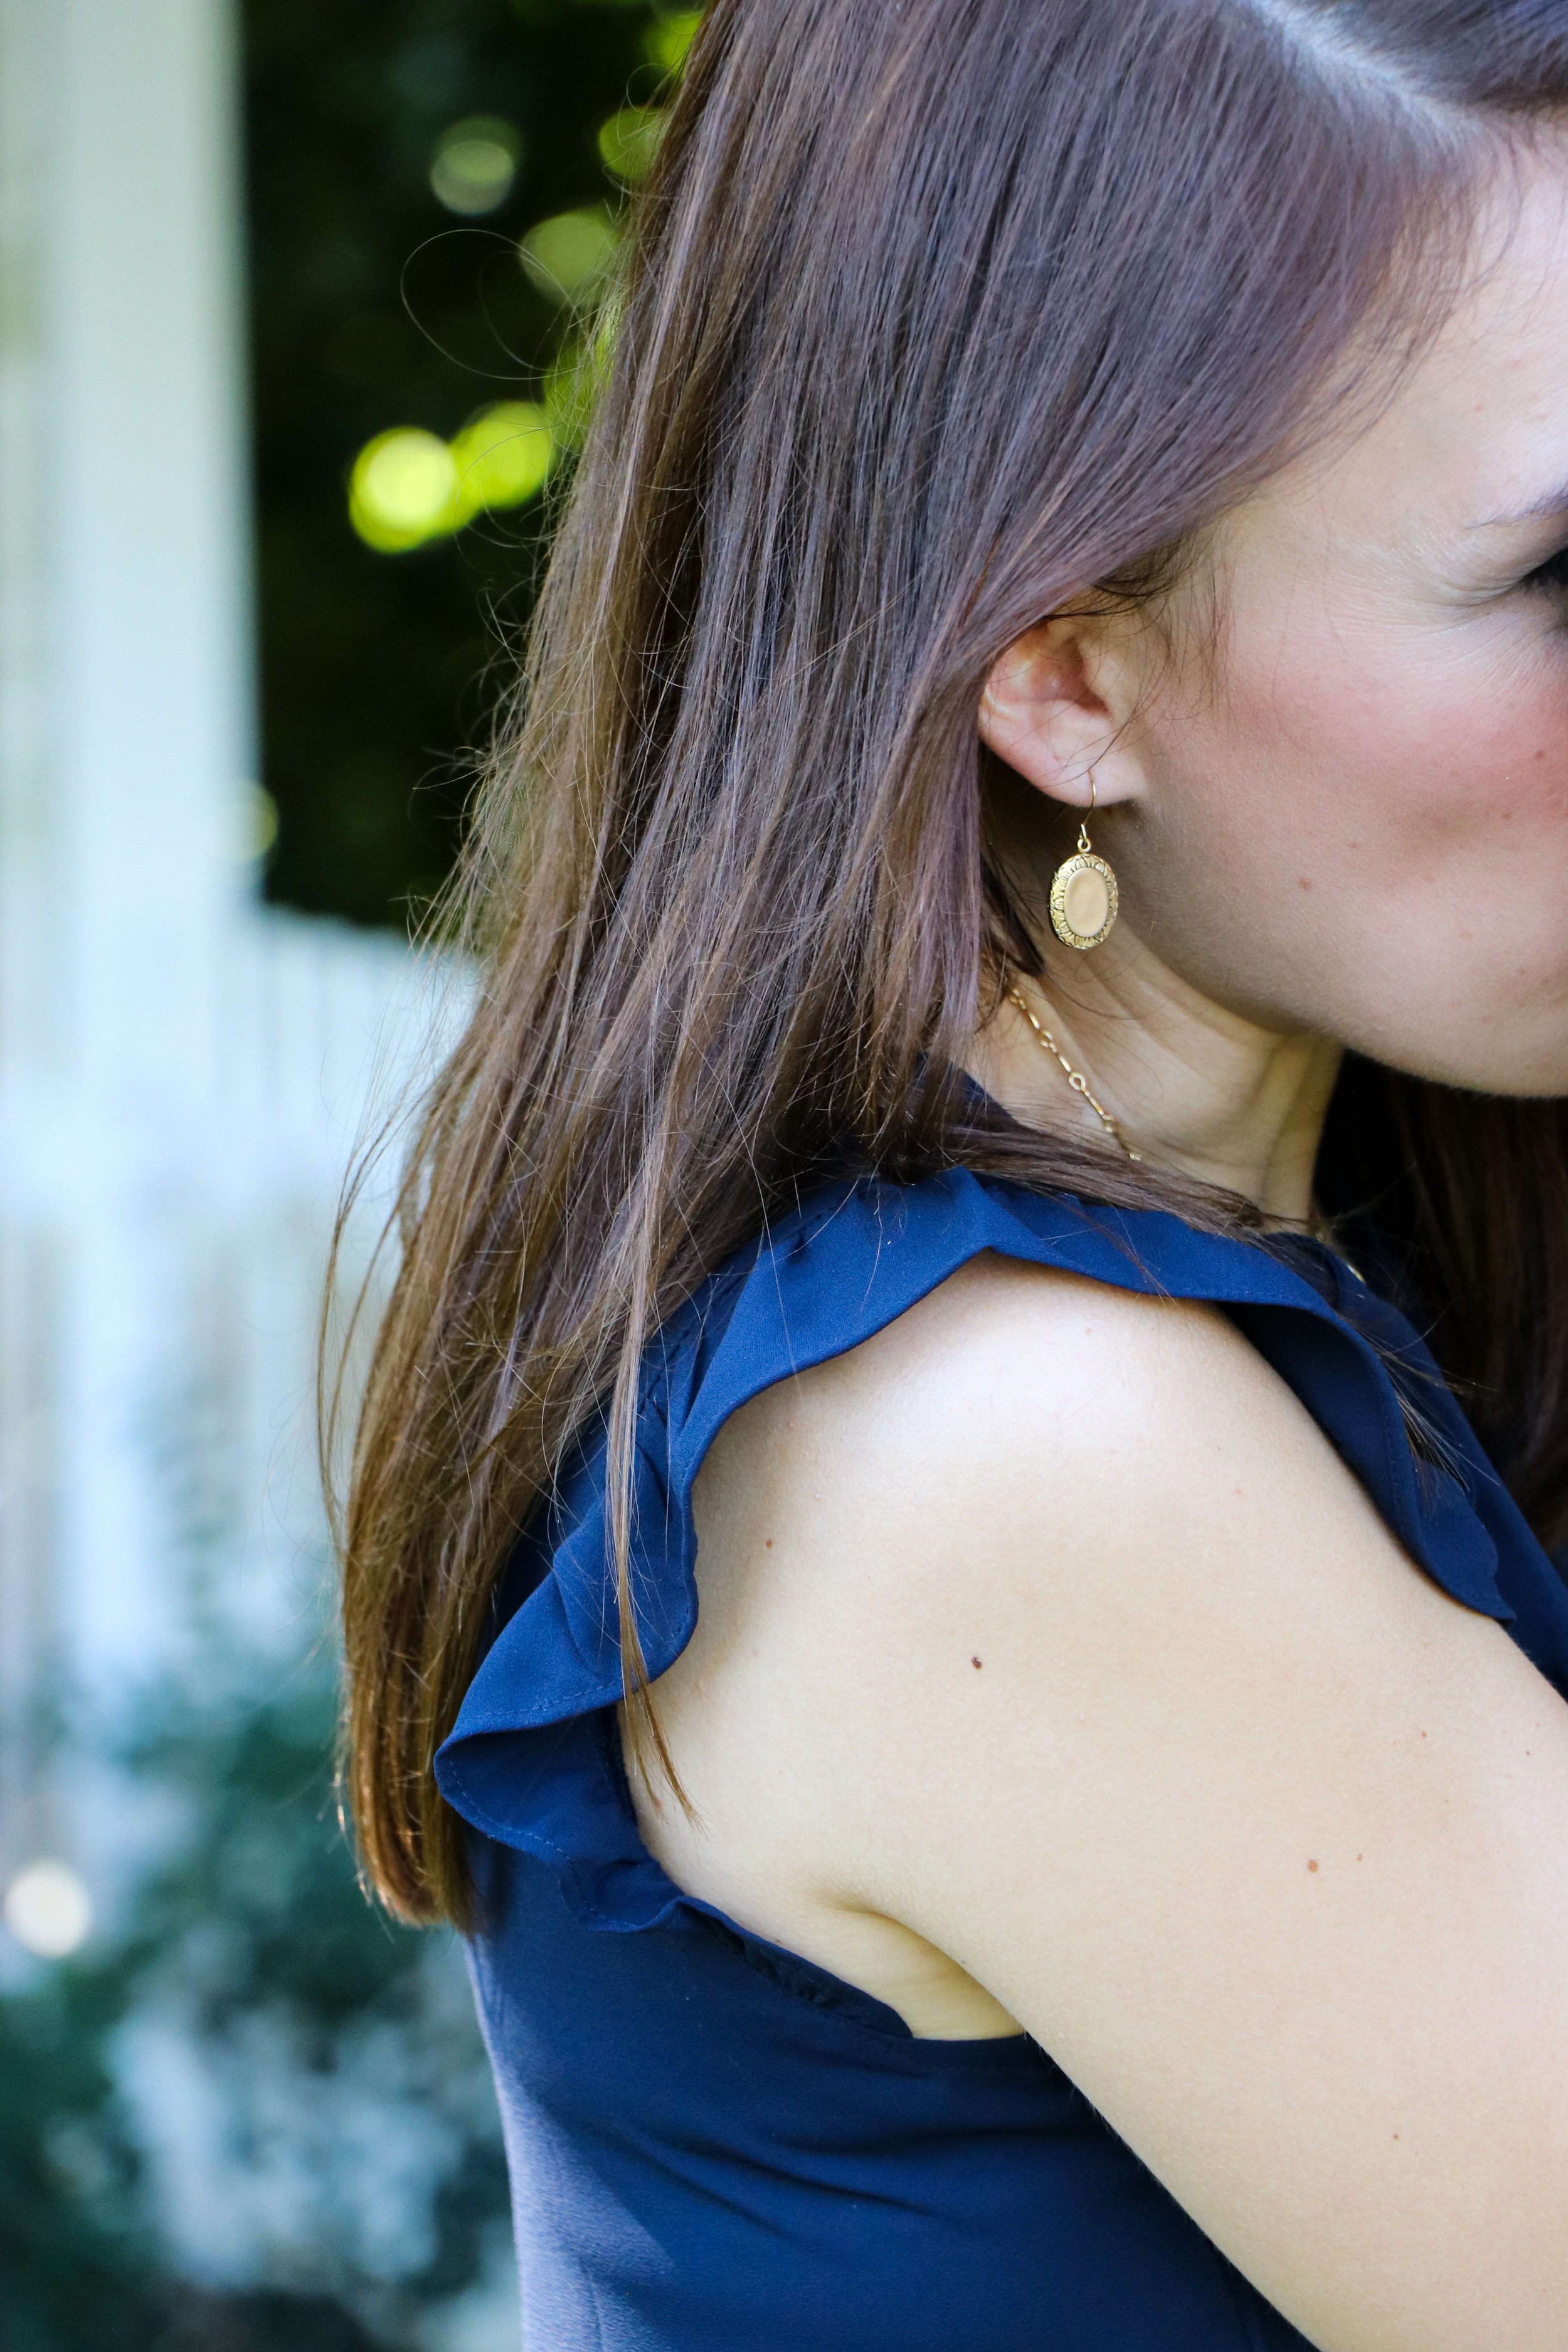 Shop these earrings  HERE .